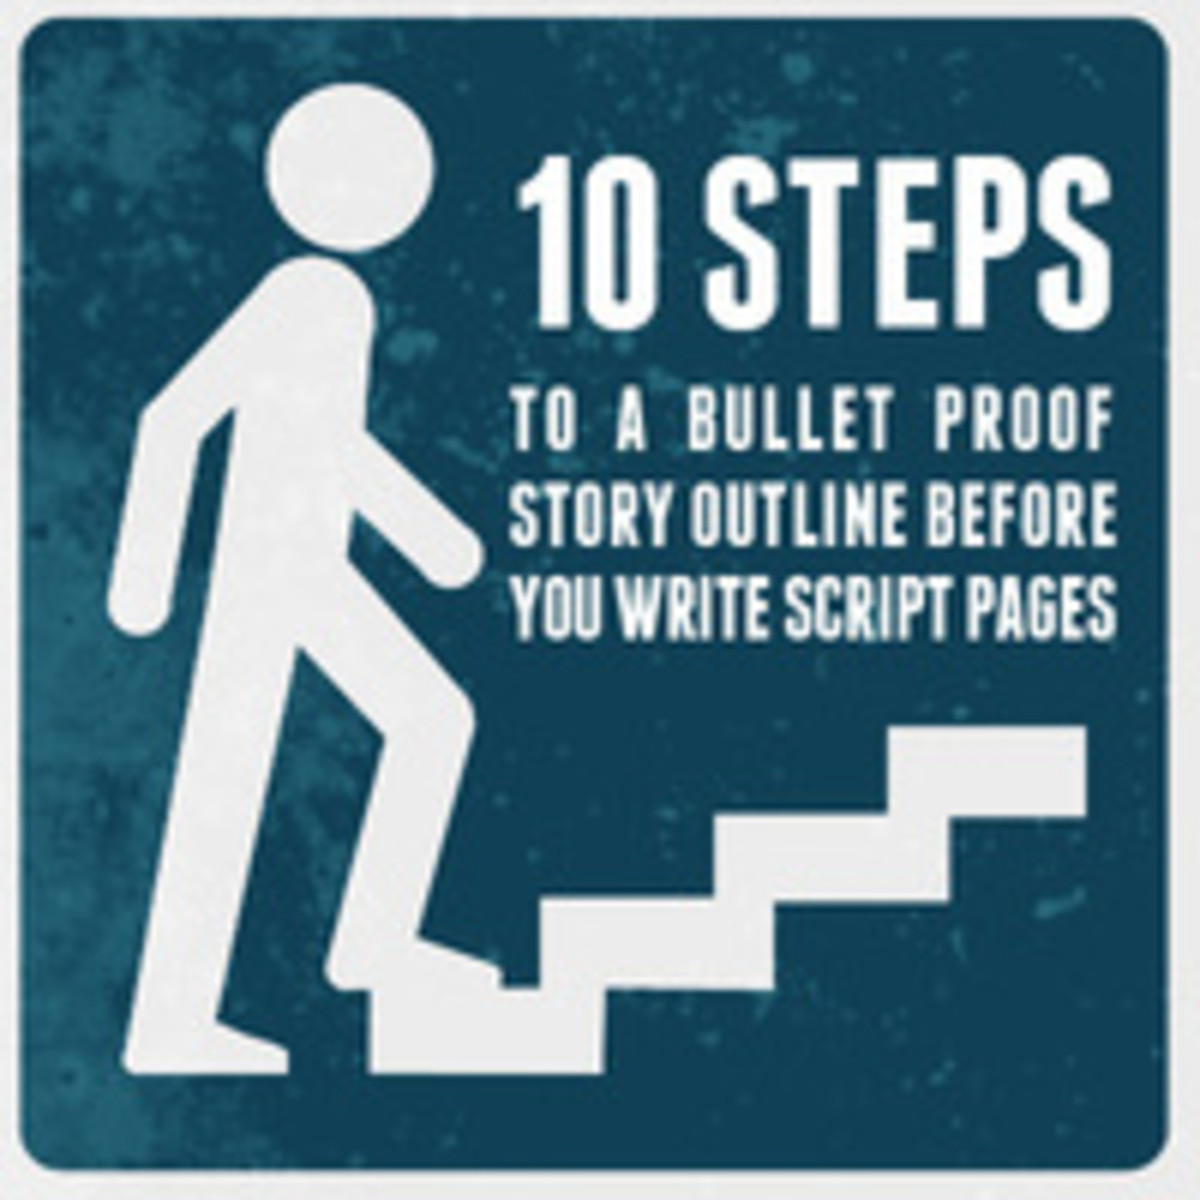 10 steps to a bullet-proof story outline before you start writing script pages.